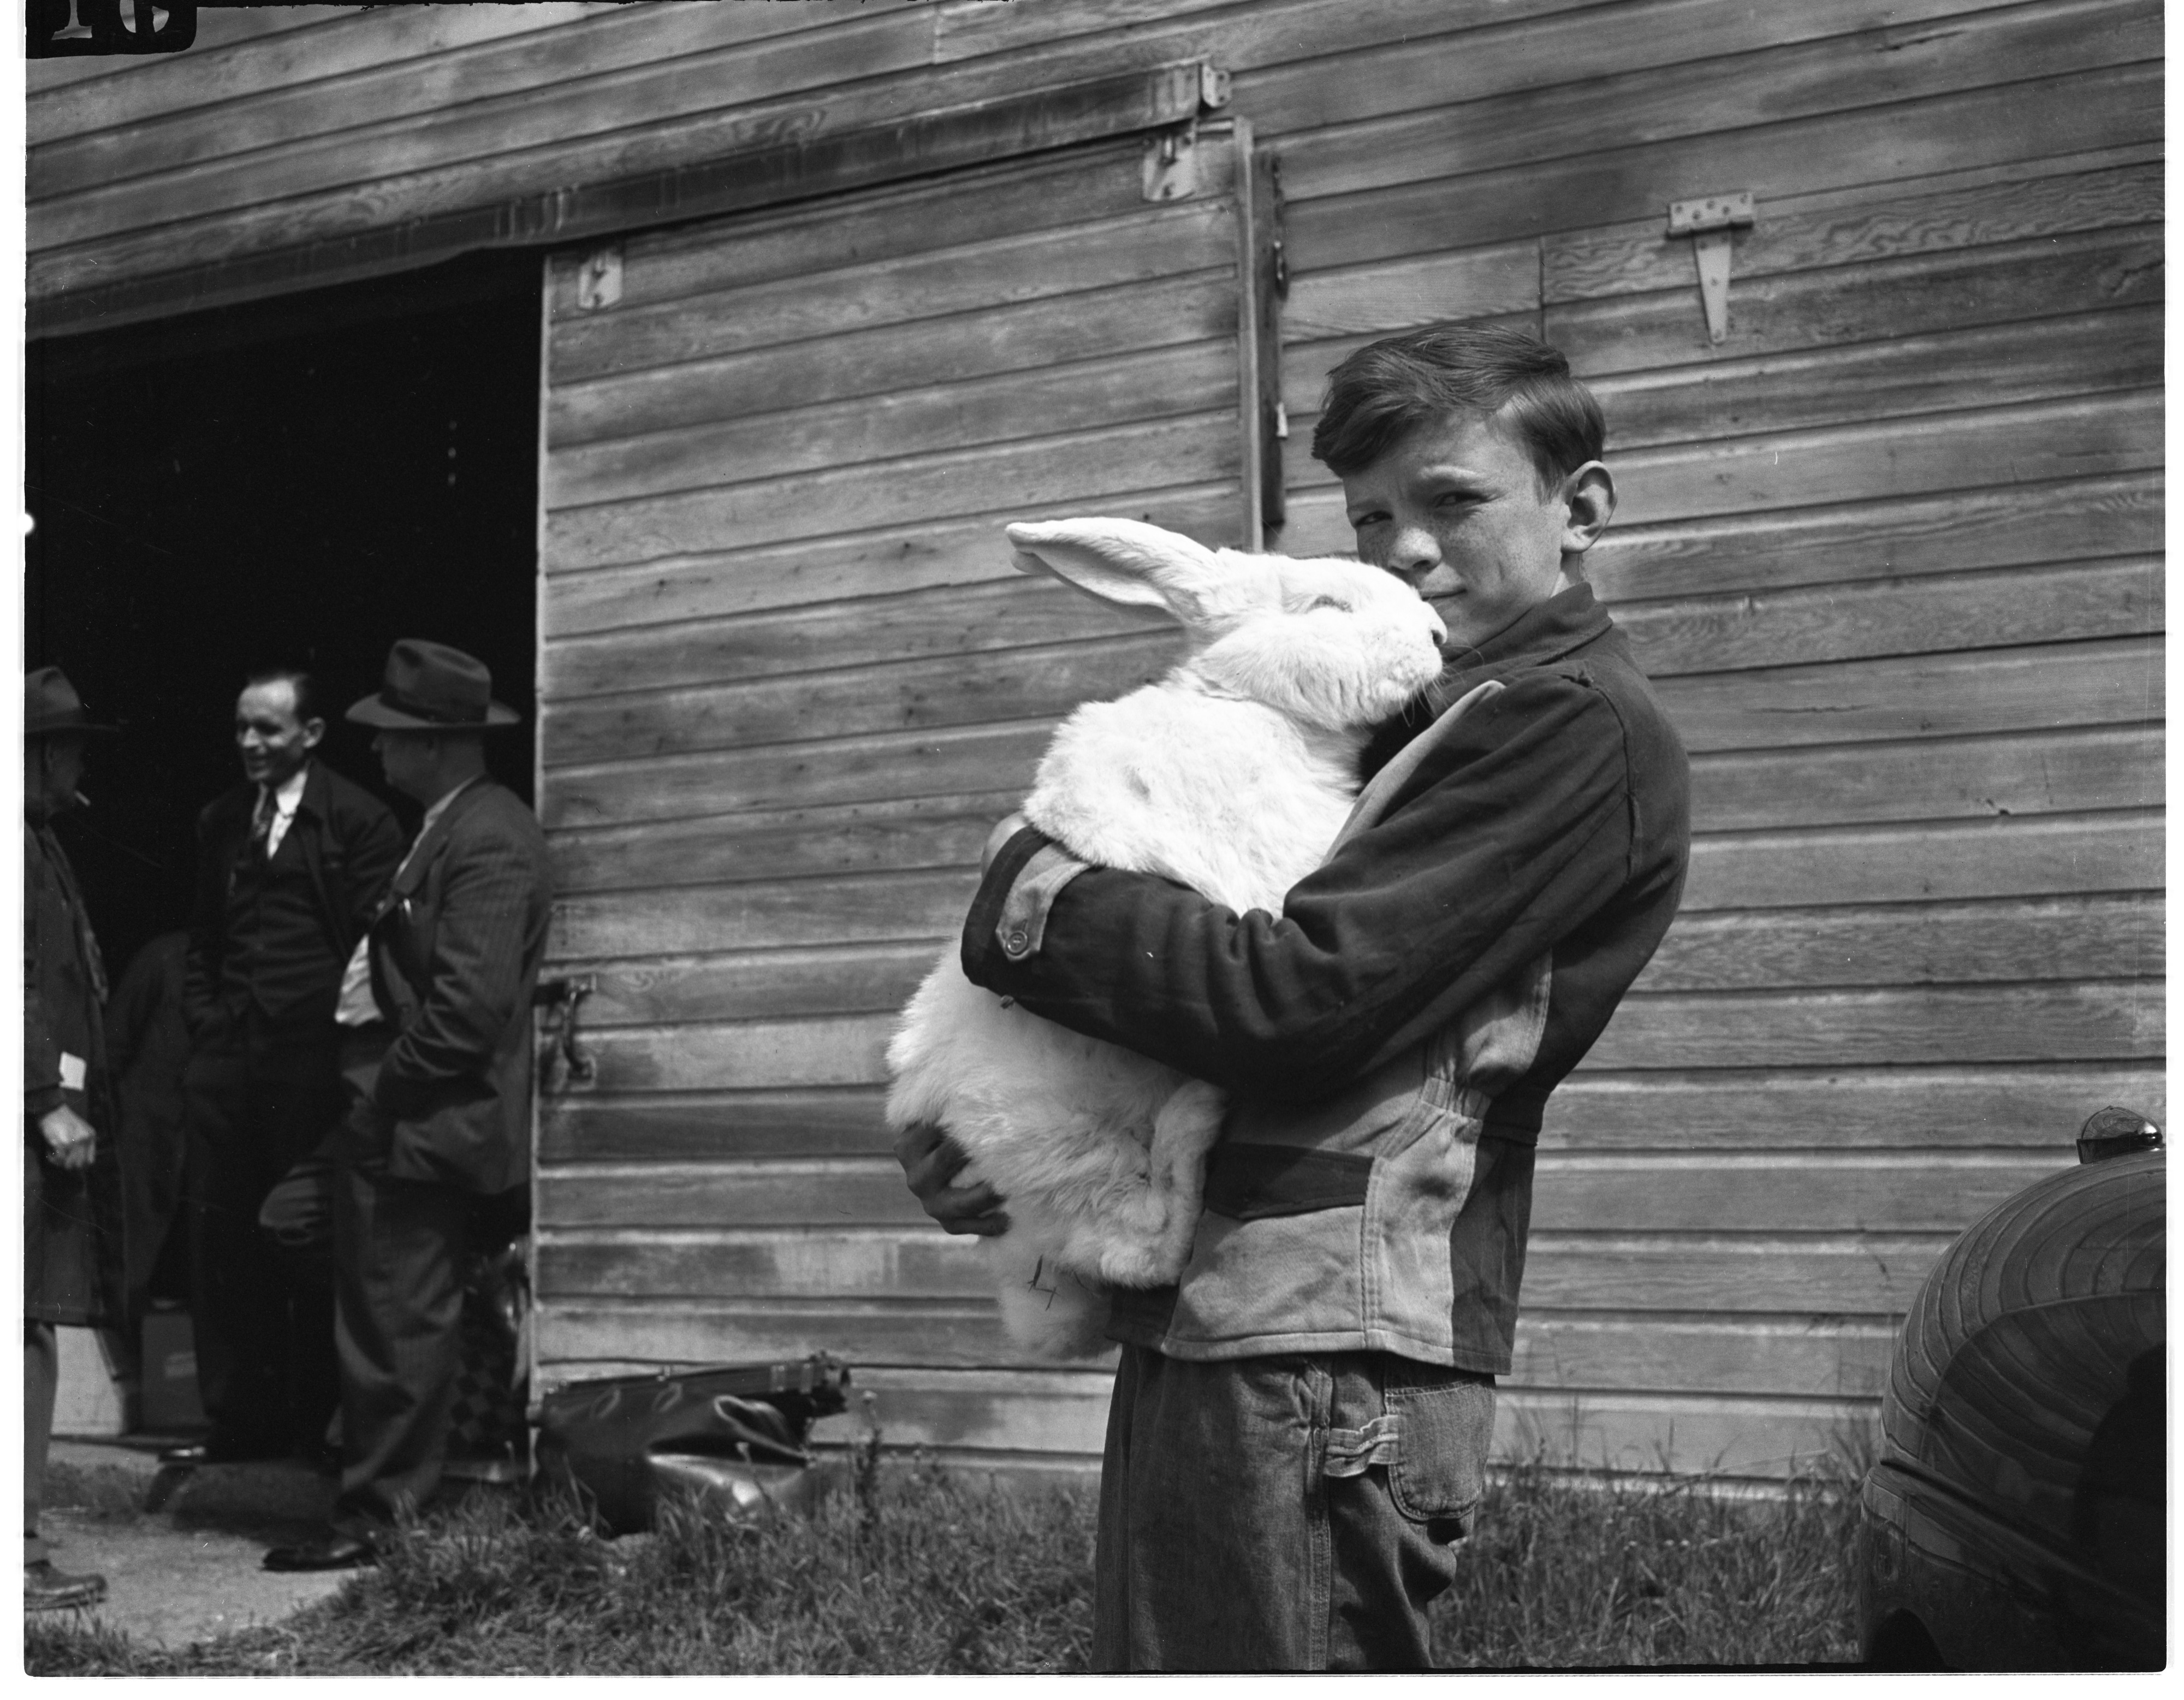 Bob Woodward Holds A Flemish Giant Rabbit Entered In The Michigan State Rabbit Show, May 1946 image